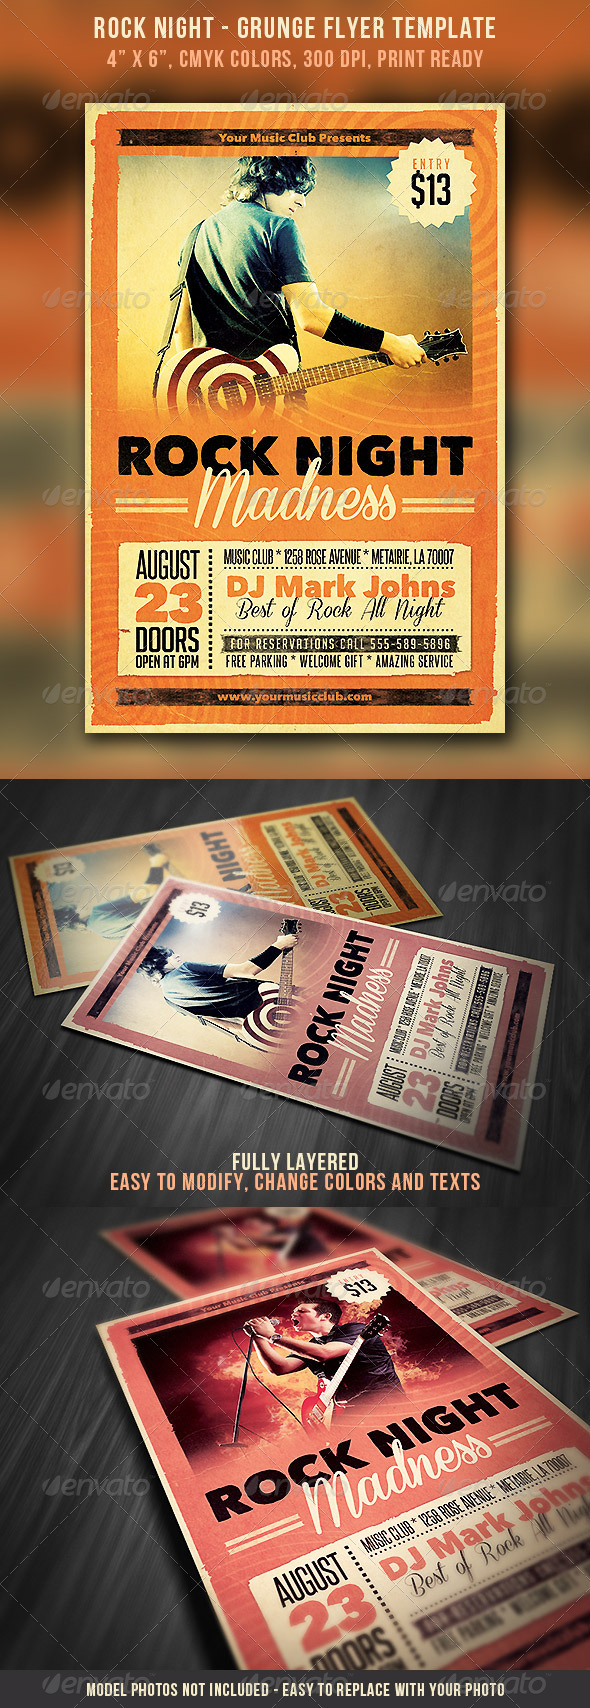 GraphicRiver Rock Night Grunge Flyer 5239851